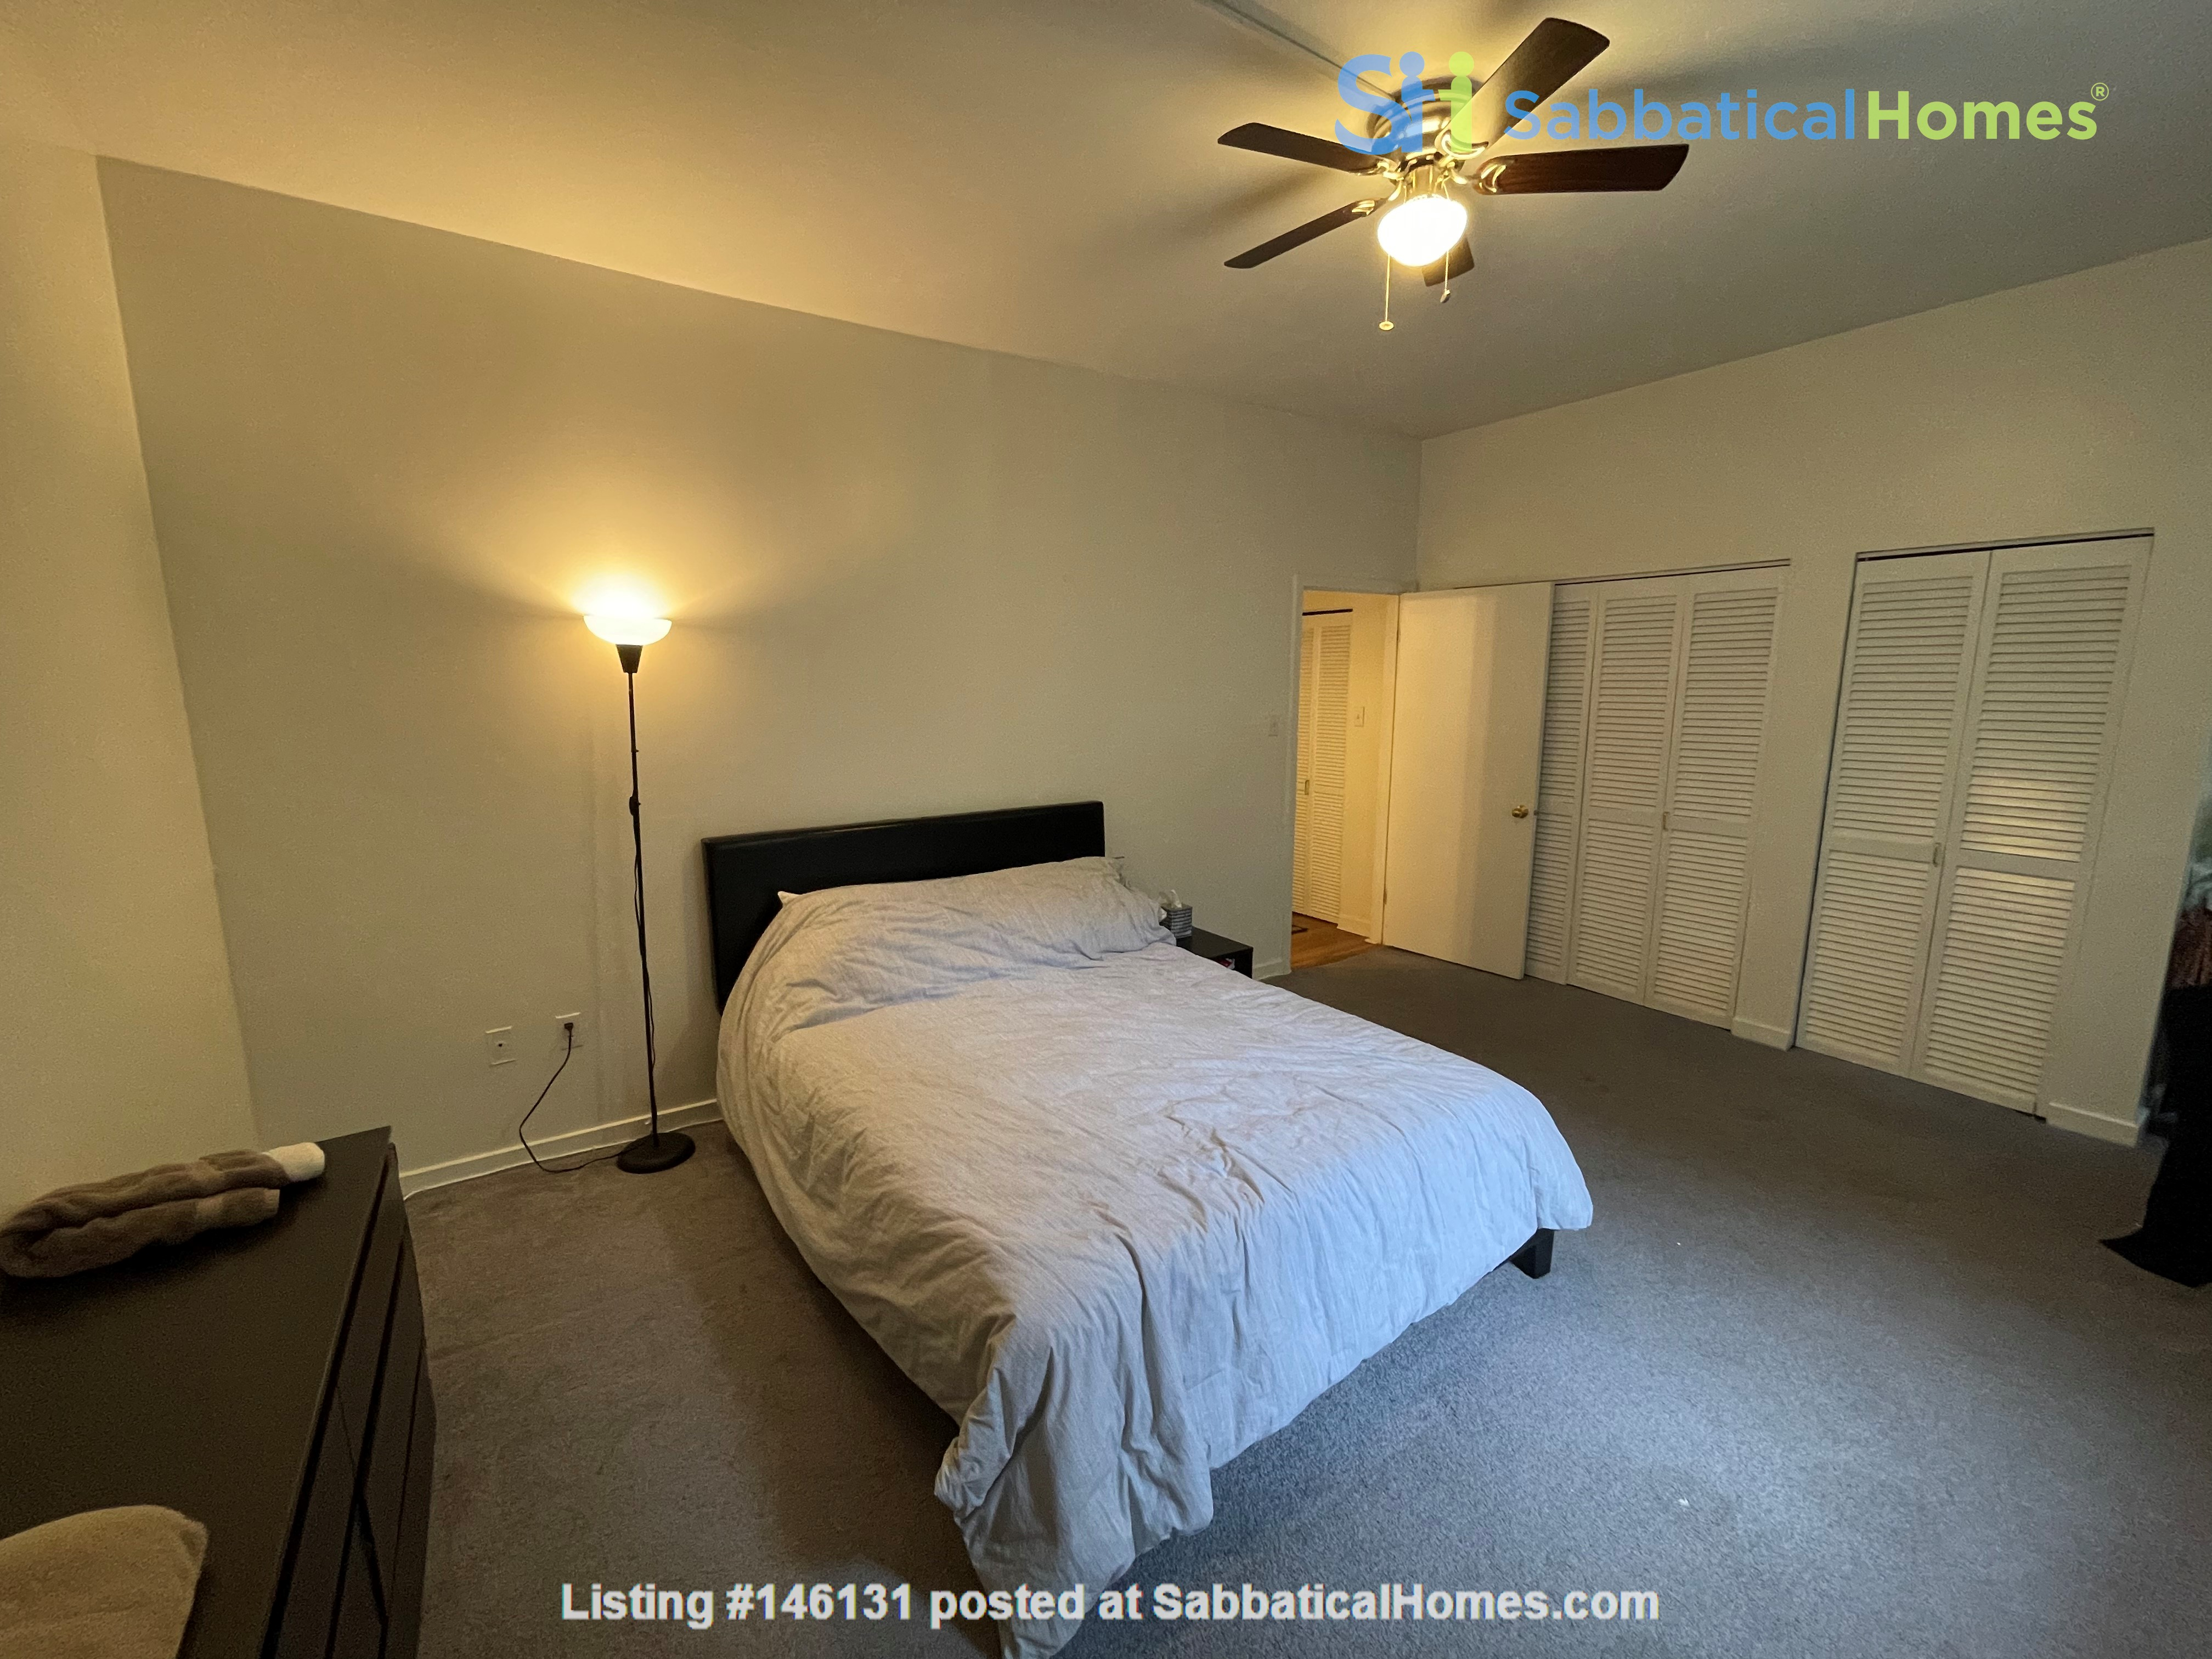 Spacious Old City 1 bedroom available Aug 1 -a city oasis! Home Rental in Philadelphia 3